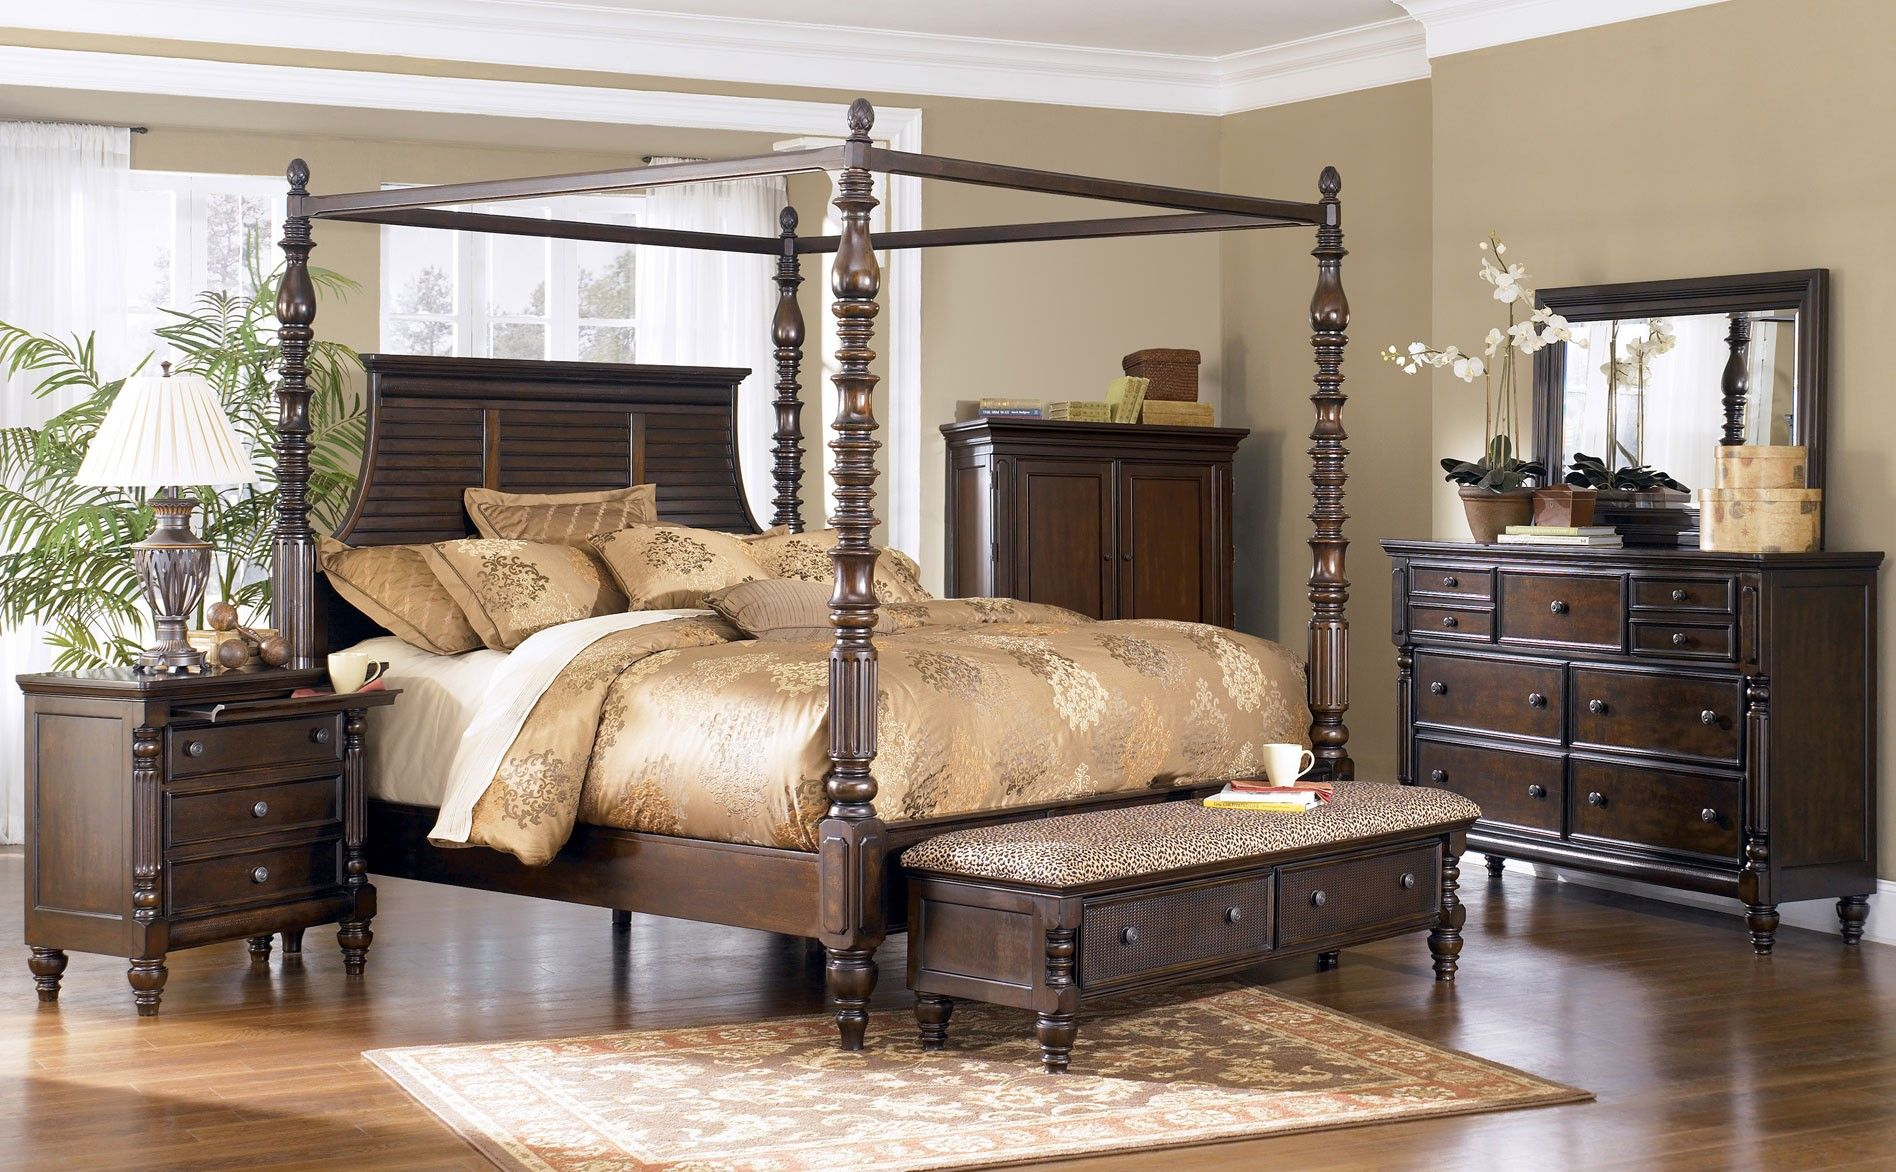 Best Ashley Key Town King Poster Bed Clearance Outlet Raleigh Furniture Home Comfort Furniture 400 x 300